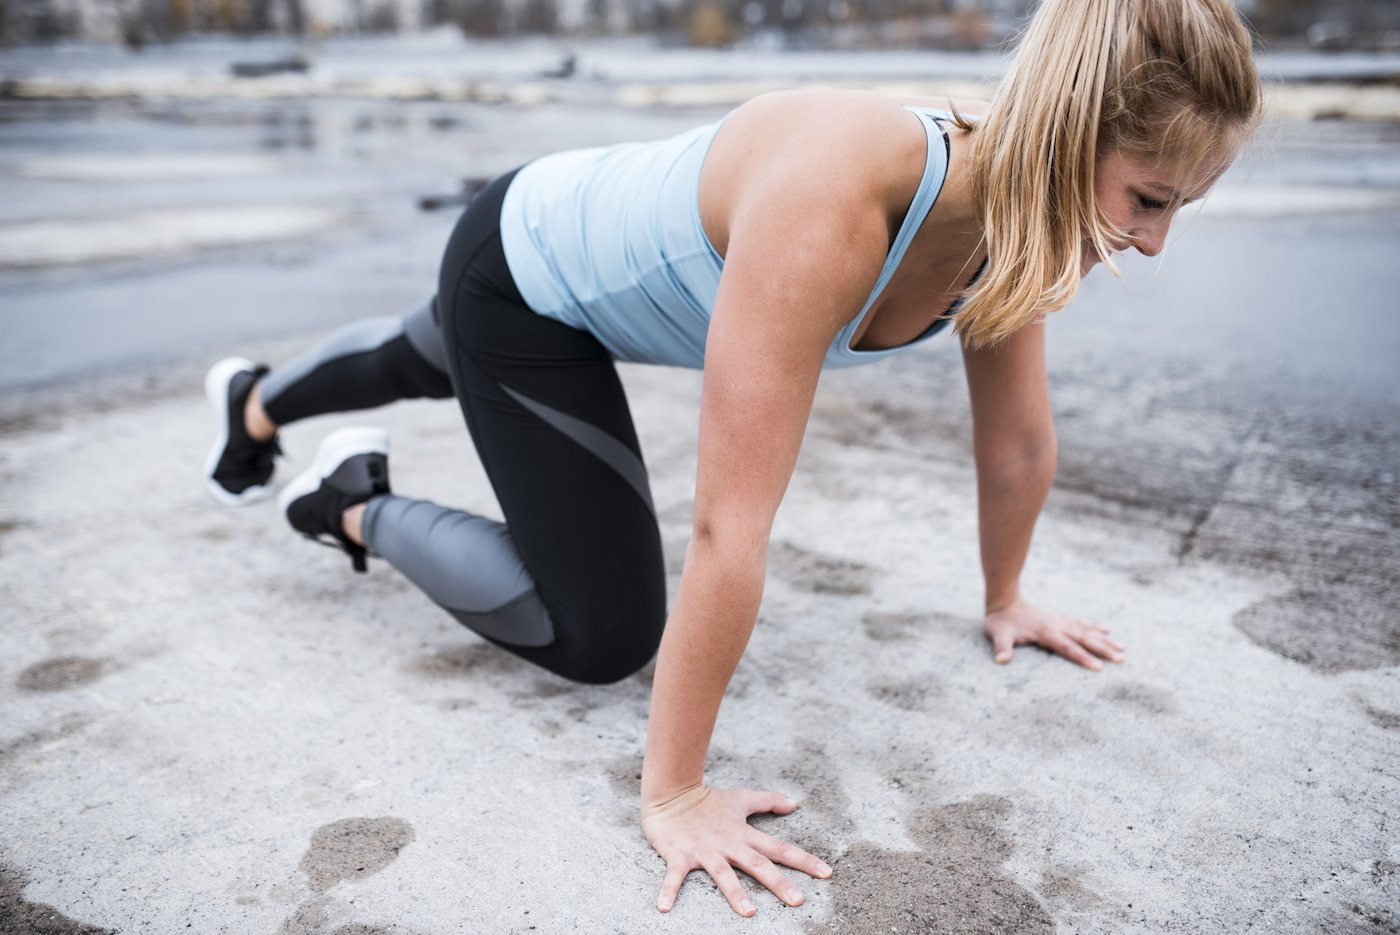 Thumbnail for How to make mountain climbers more manageable, according to trainers